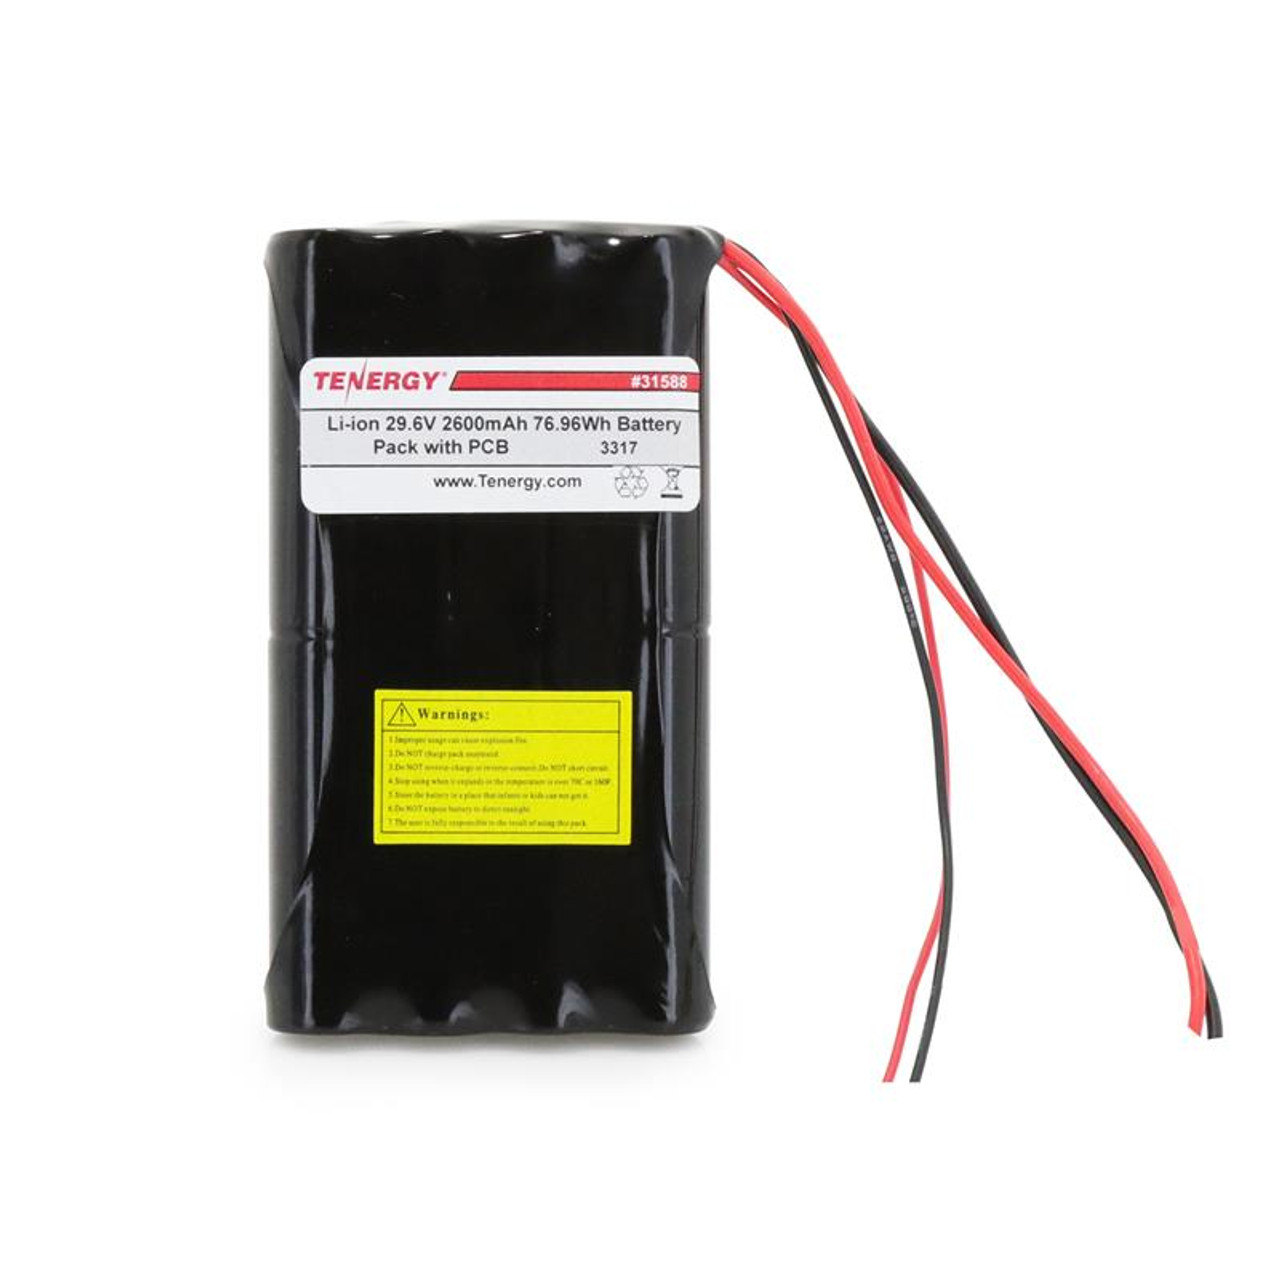 AT: Tenergy Li-ion 29.6V 2600mAh Rechargeable Battery Pack w/ PCB (8S1P, 76.96Wh, 5A Rate)